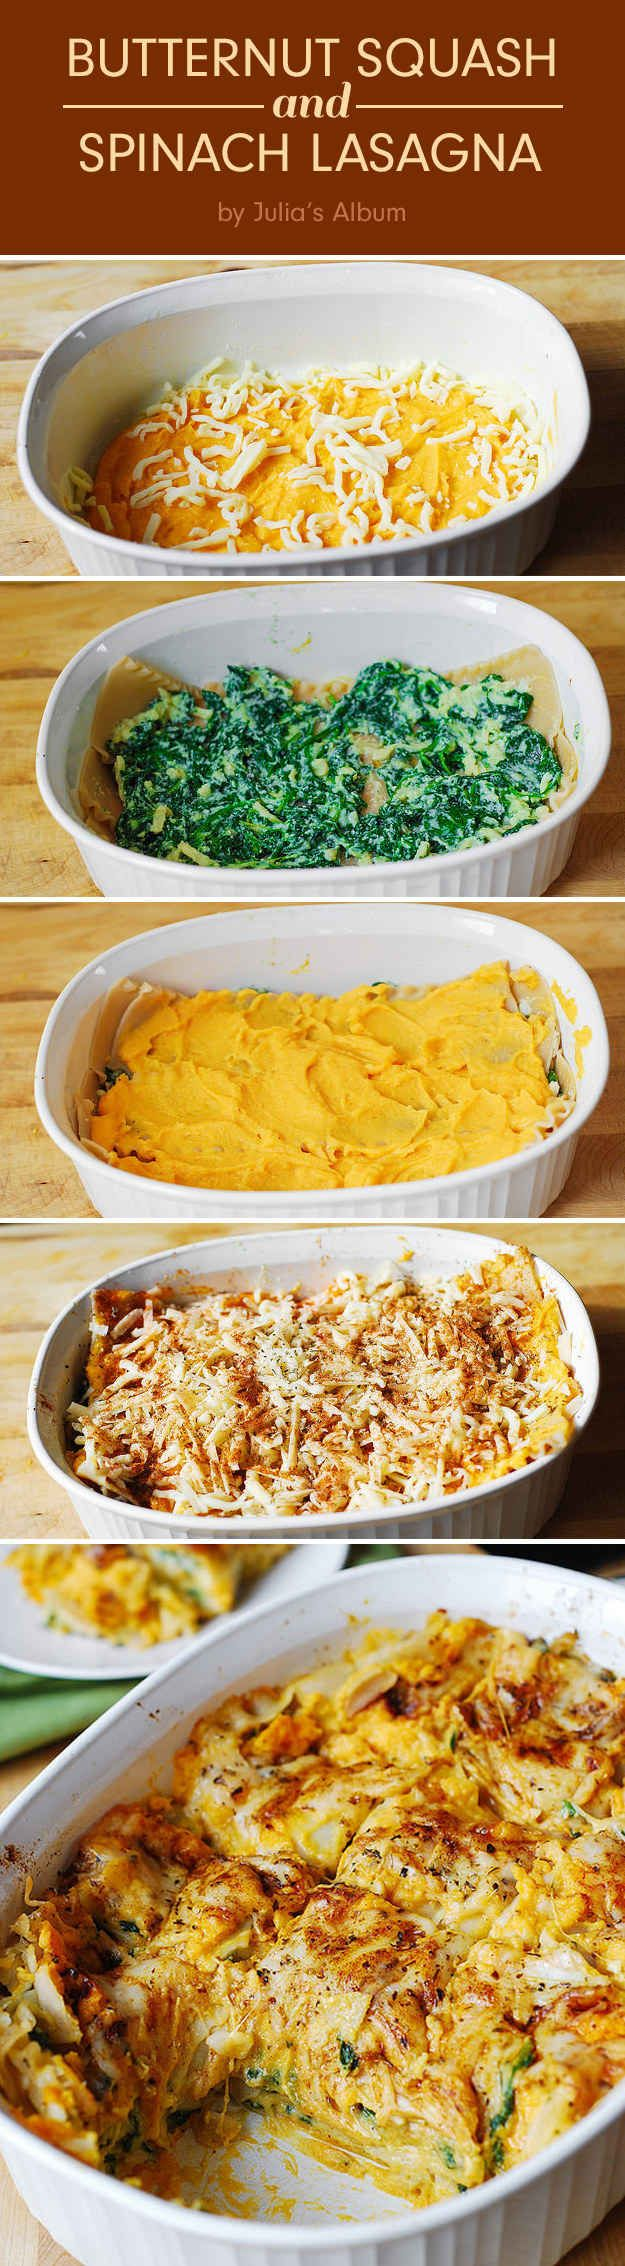 Butternut Squash and Spinach Lasagna. Use the gluten free instructions that are…